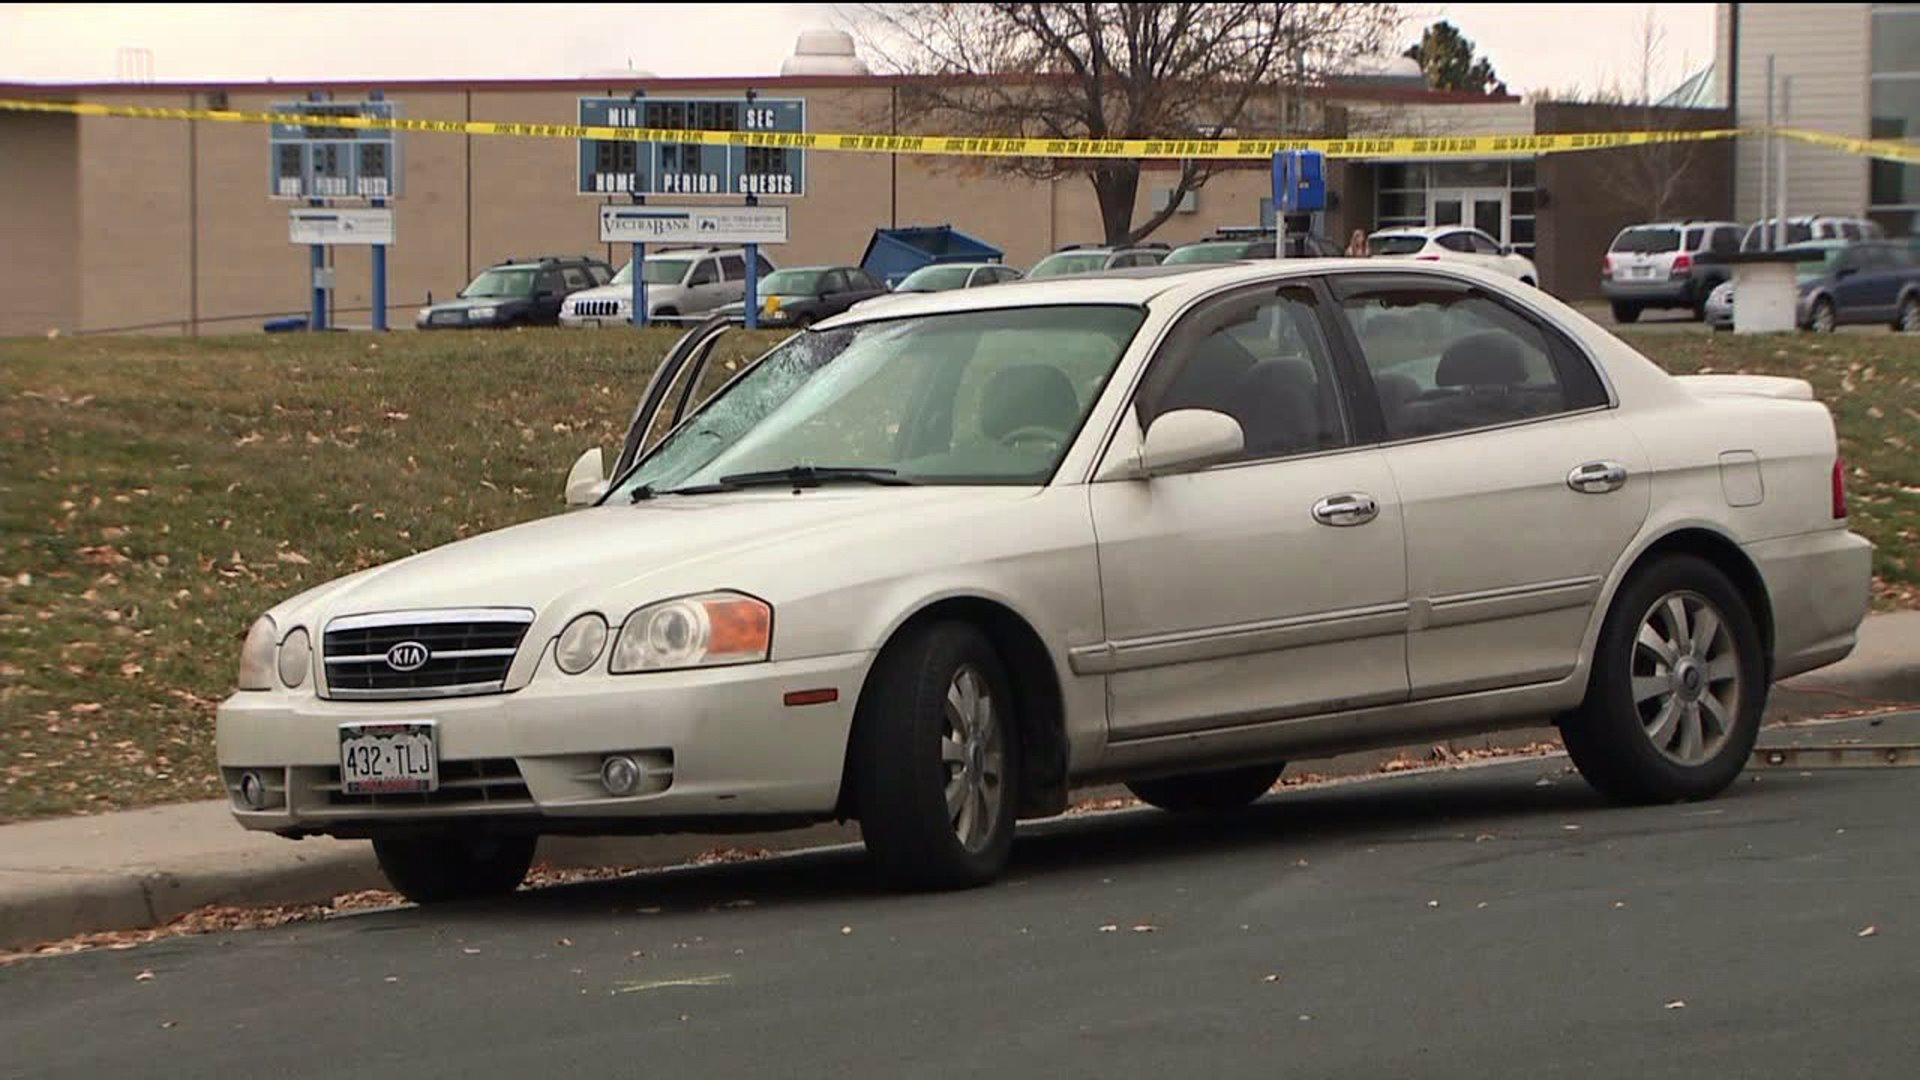 Student hit by car outside Broomfield High School